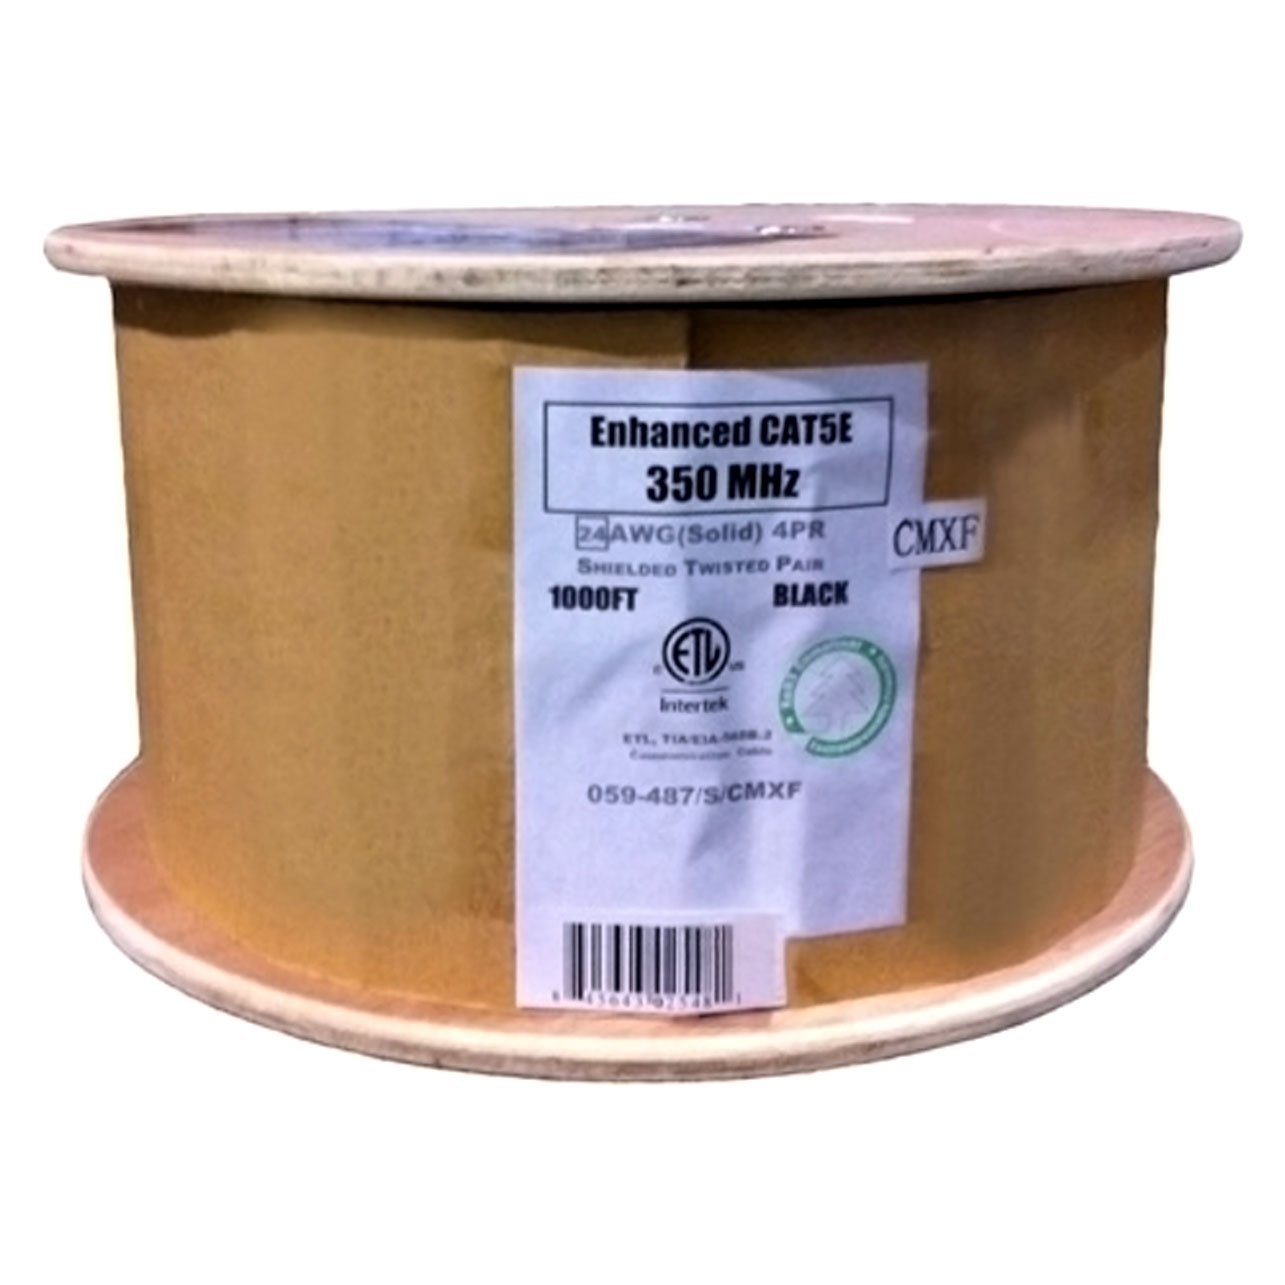 Vertical Cable Cat5e, 350 Mhz, Shielded, Gel Filled (Flooded Core), Direct Burial, 1000ft, Black, Bulk Ethernet Cable, Wooden Spool by Vertical Cable